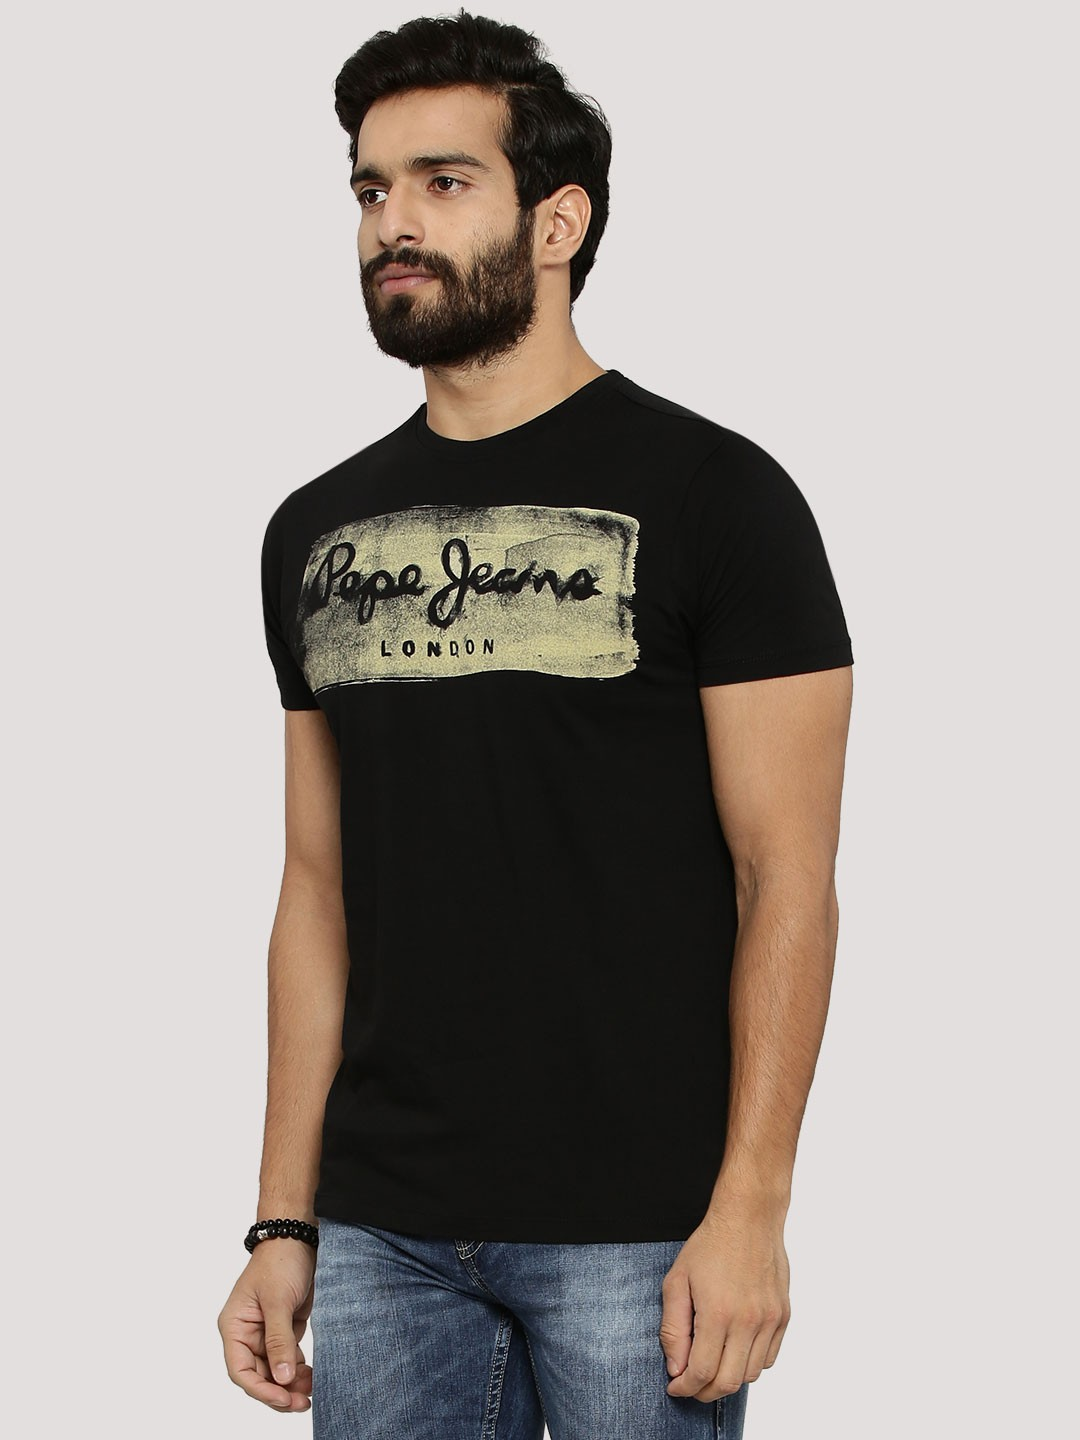 Buy Pepe Jeans Vintage Print T Shirt For Men Men 39 S Black